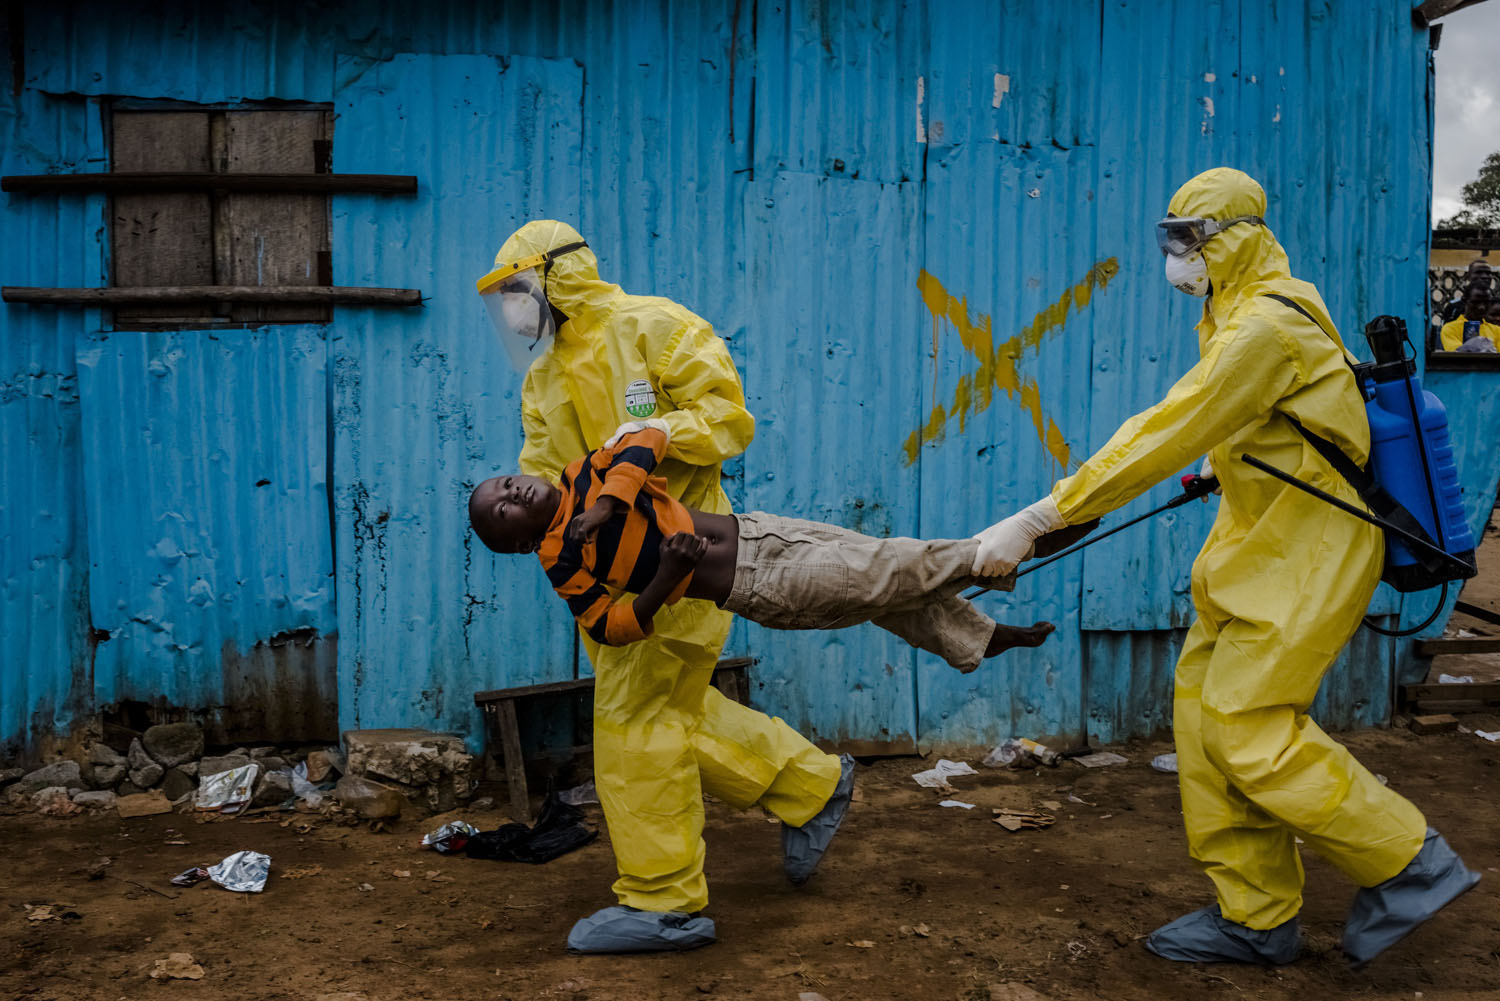 Medical staff rush into the treatment facility, carrying James Dorbor, 8, suspected of having Ebola. Since the health workers weren't wearing the appropriate protection against Ebola, they positioned James' body in a way to limit exposure to the deadly virus. Monrovia, Liberia, Sept. 5, 2014.